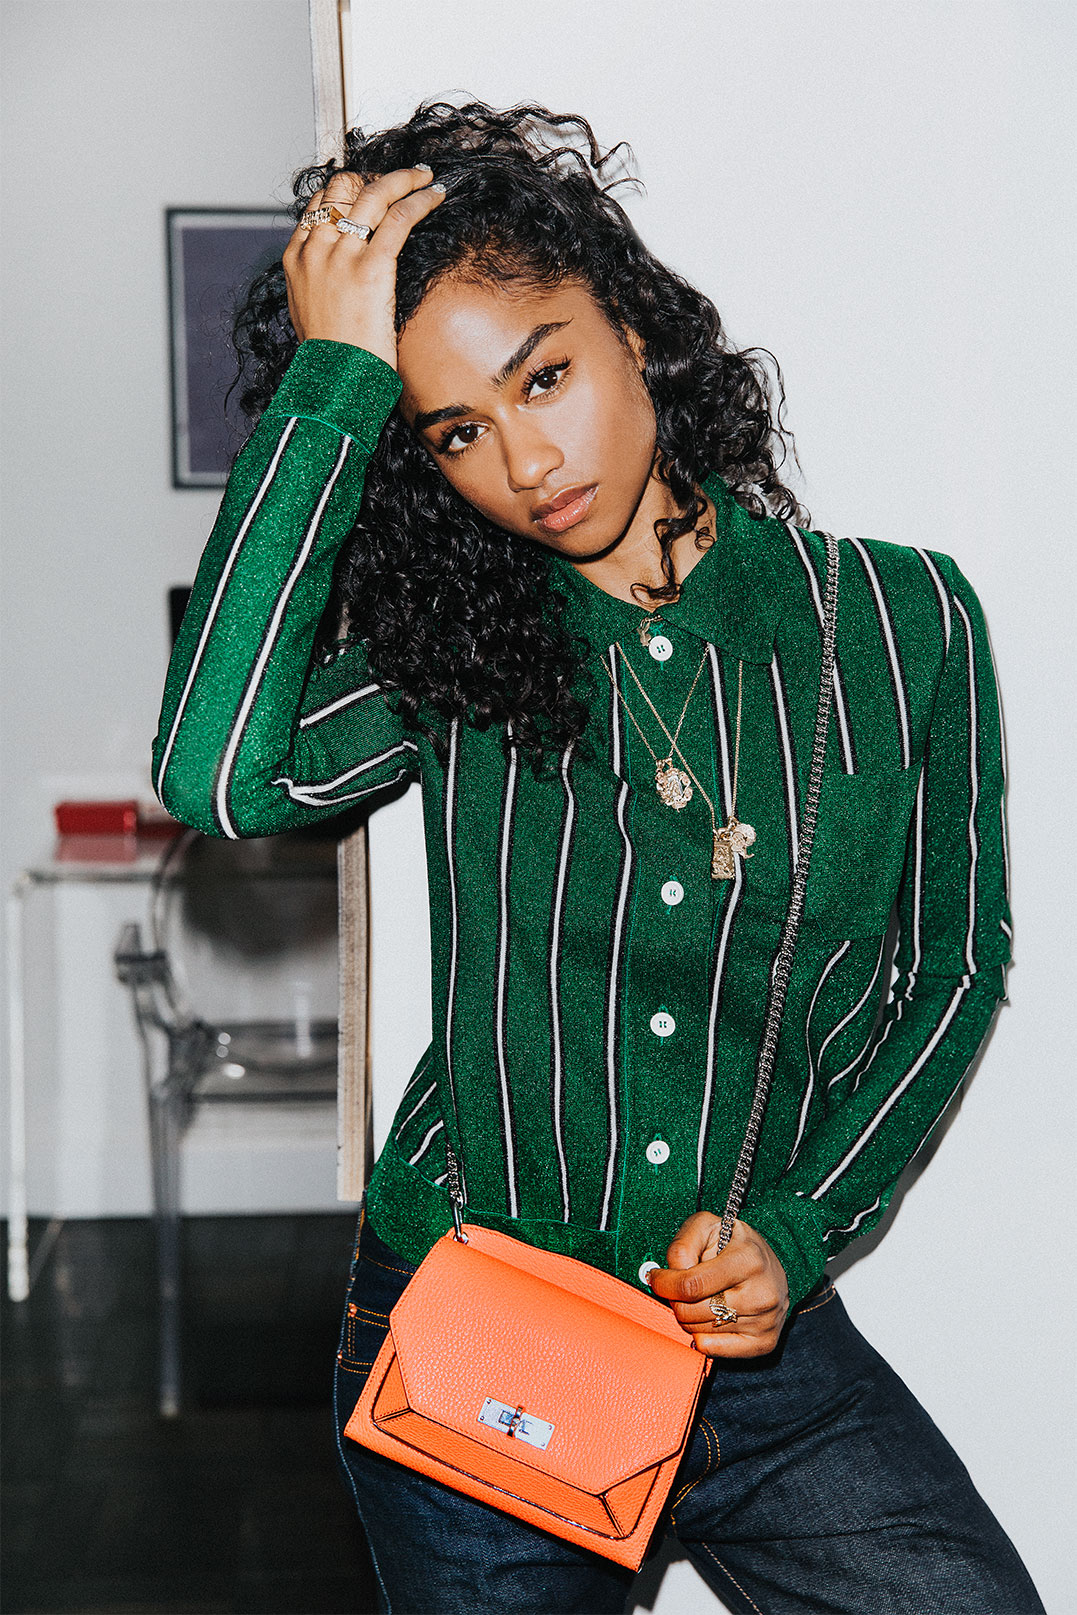 Vashtie and her Suzy shoulder bag